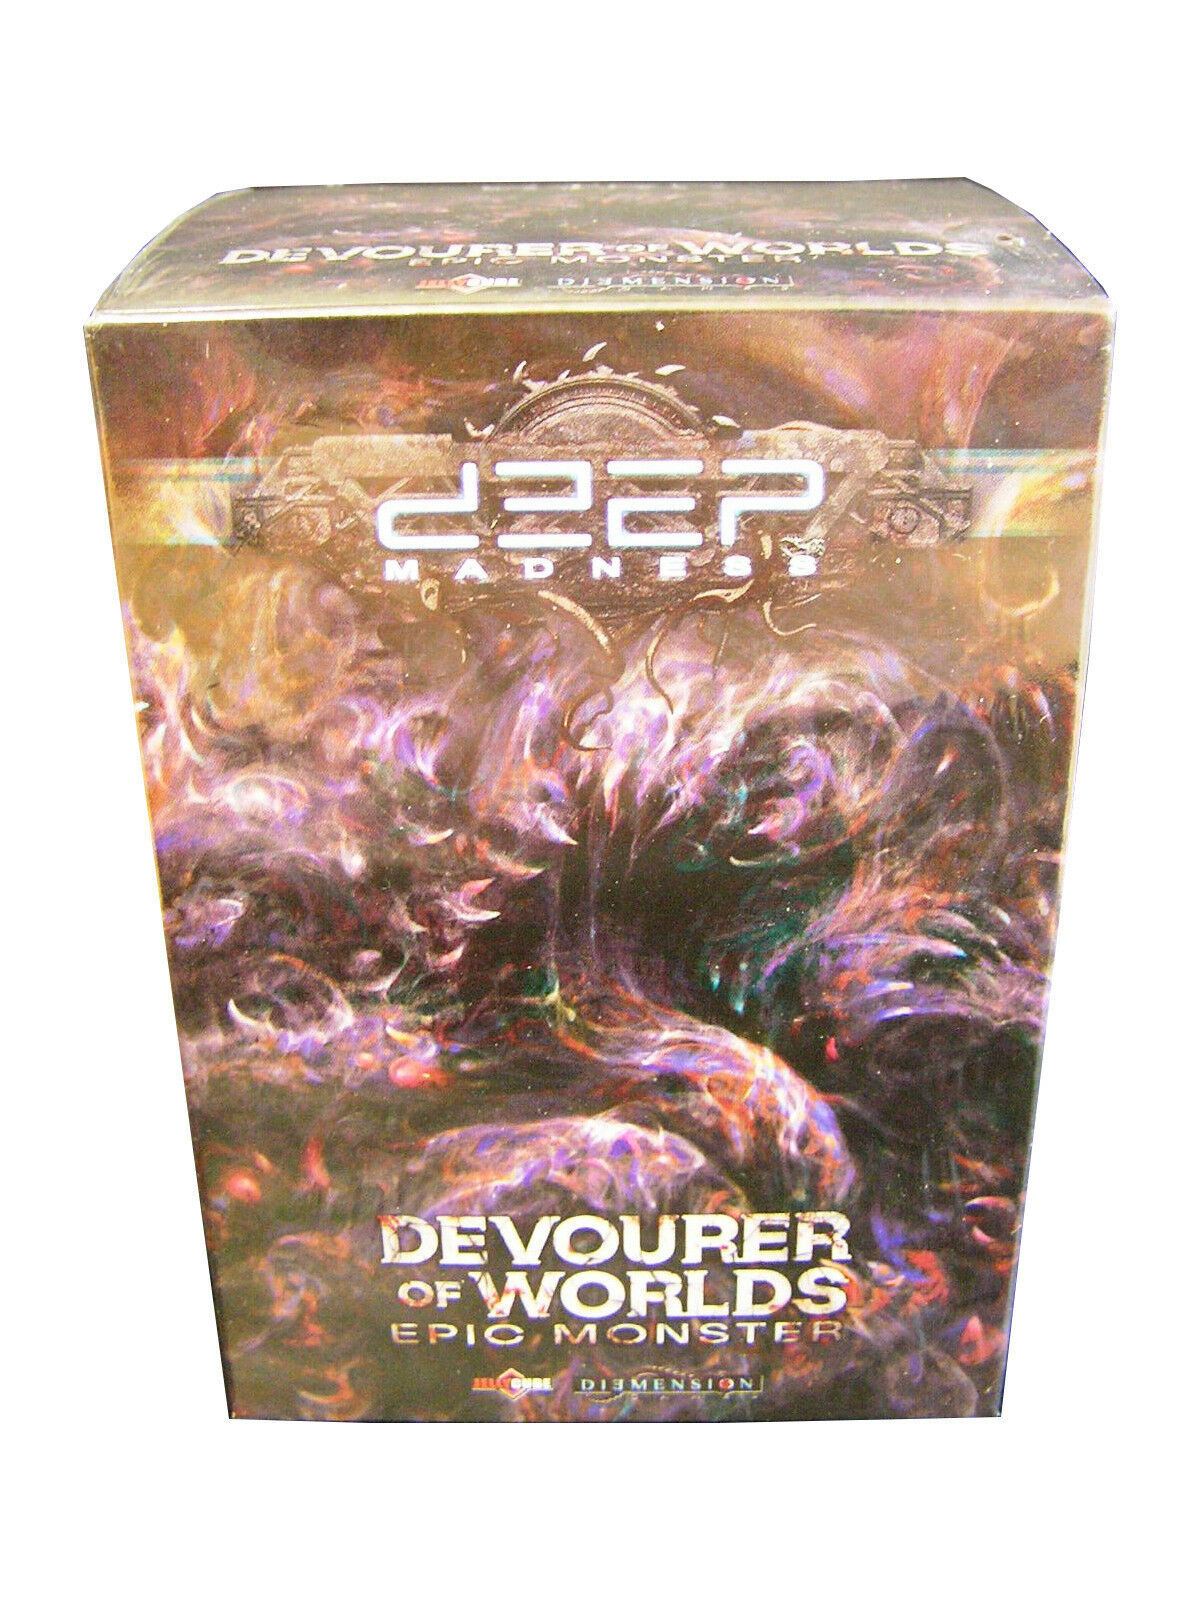 Deep Madness - Kickstarter Investigator Pledge + Devourer of of of Worlds 314187